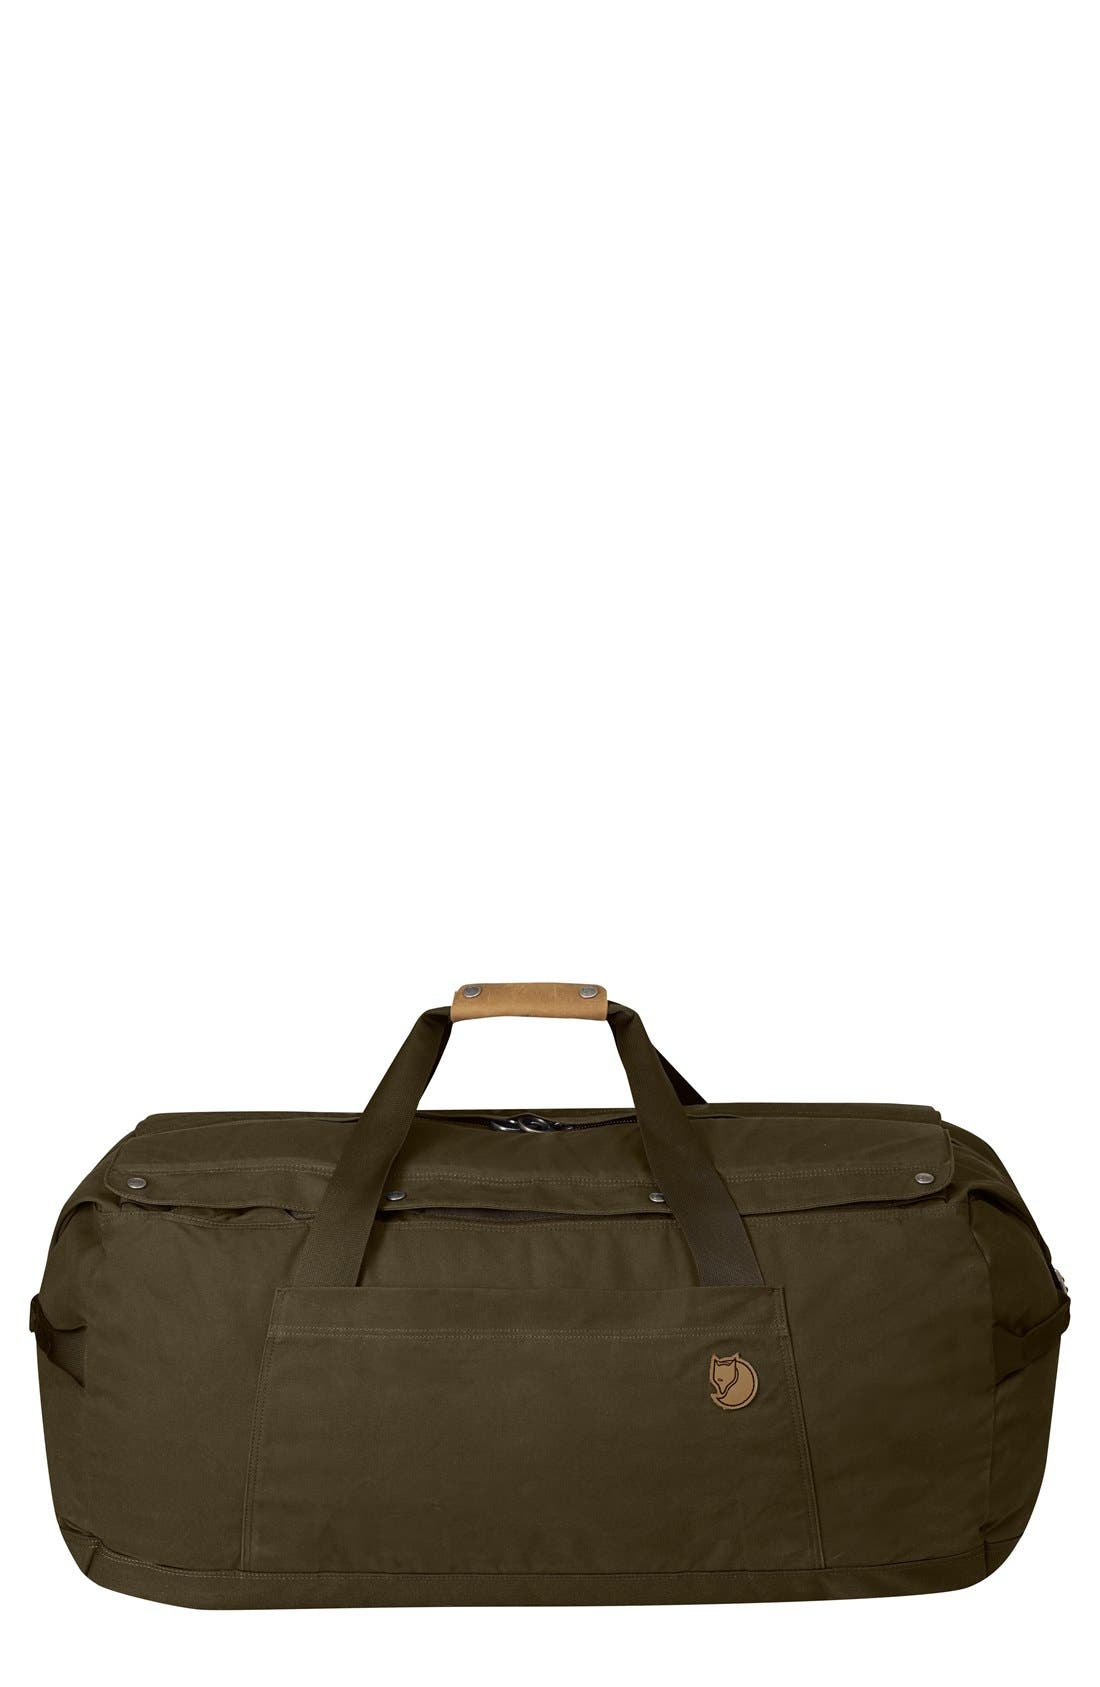 FJÄLLRÄVEN Duffel Bag No. 6 Large Duffel Bag